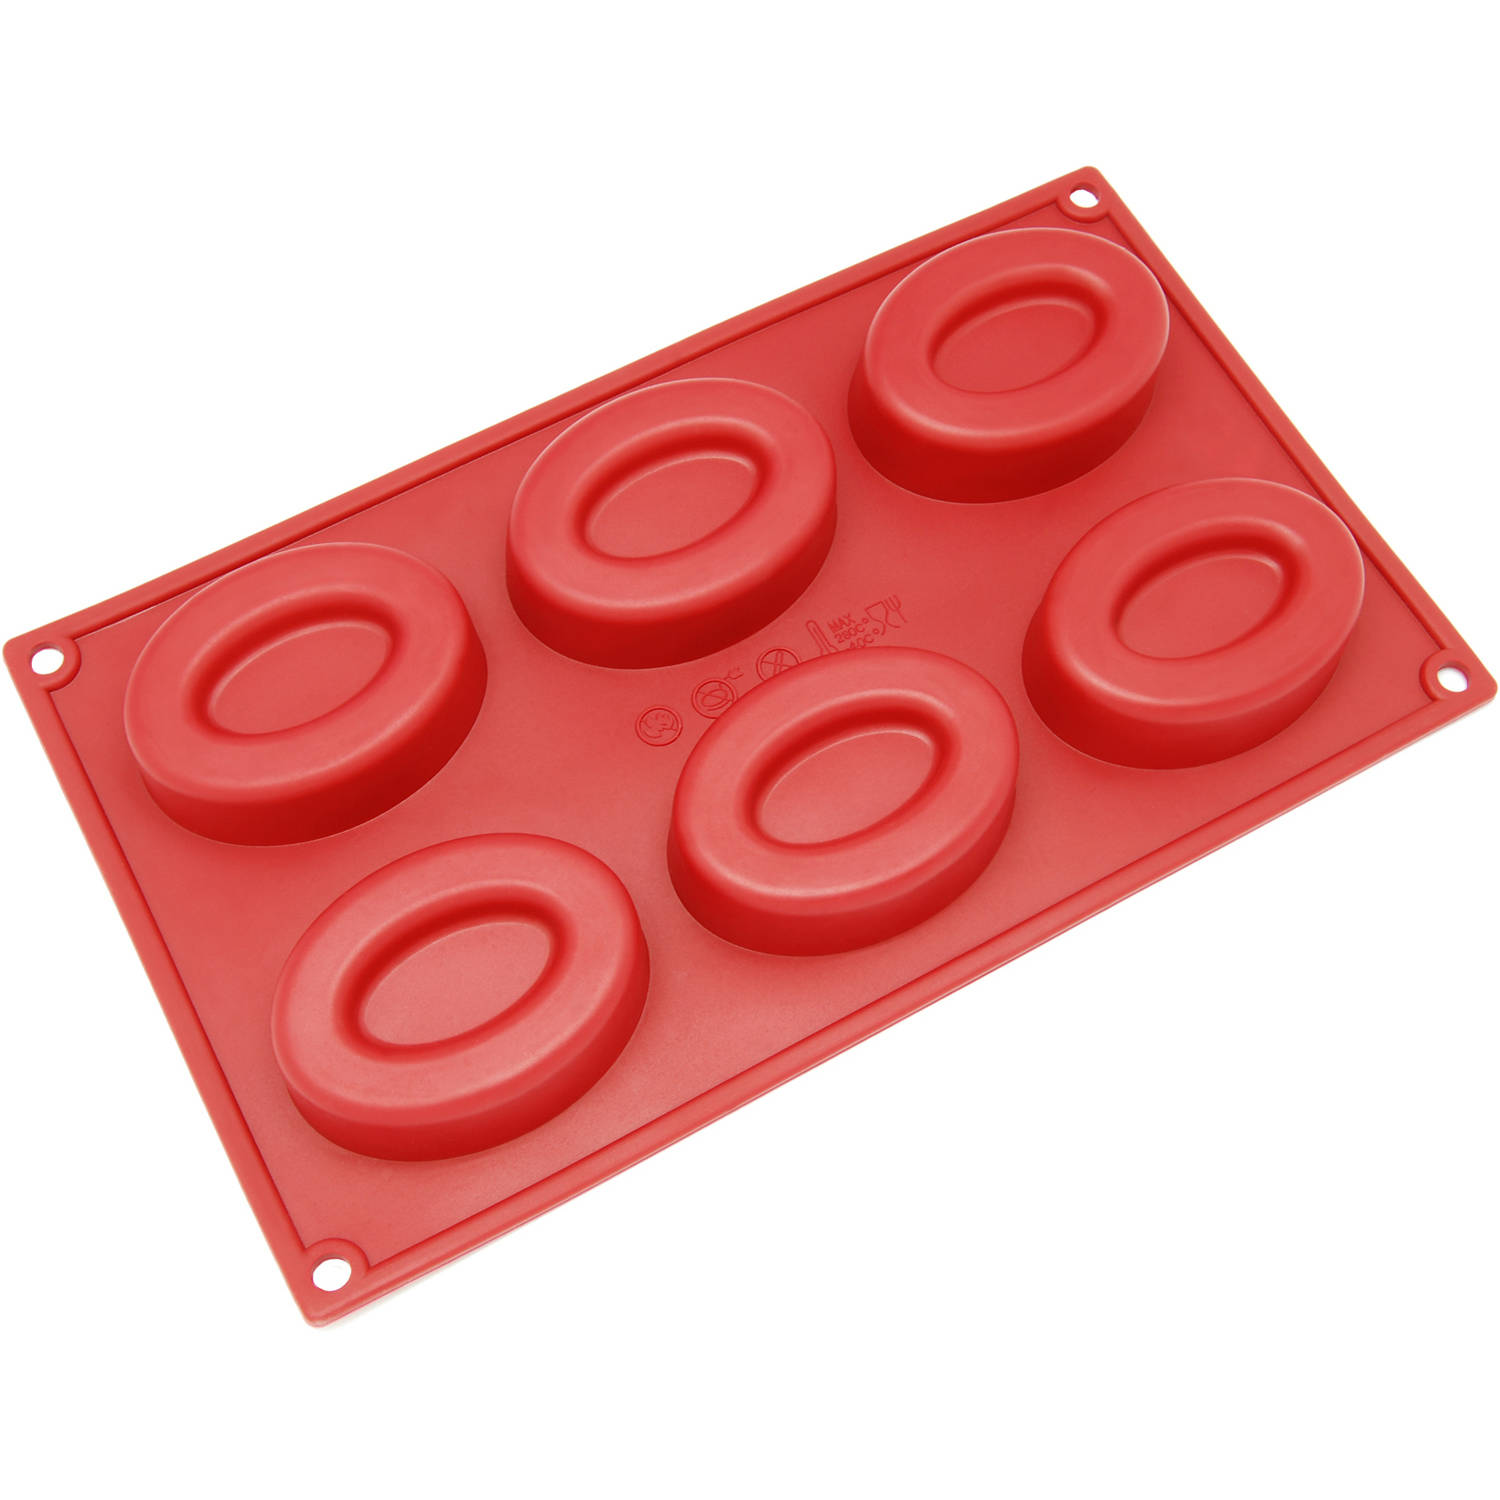 Freshware 6-Cavity Oval Ring Silicone Mold for Muffin, Soap, Cupcake, Cheesecake, Pudding and Jello, SL-132RD